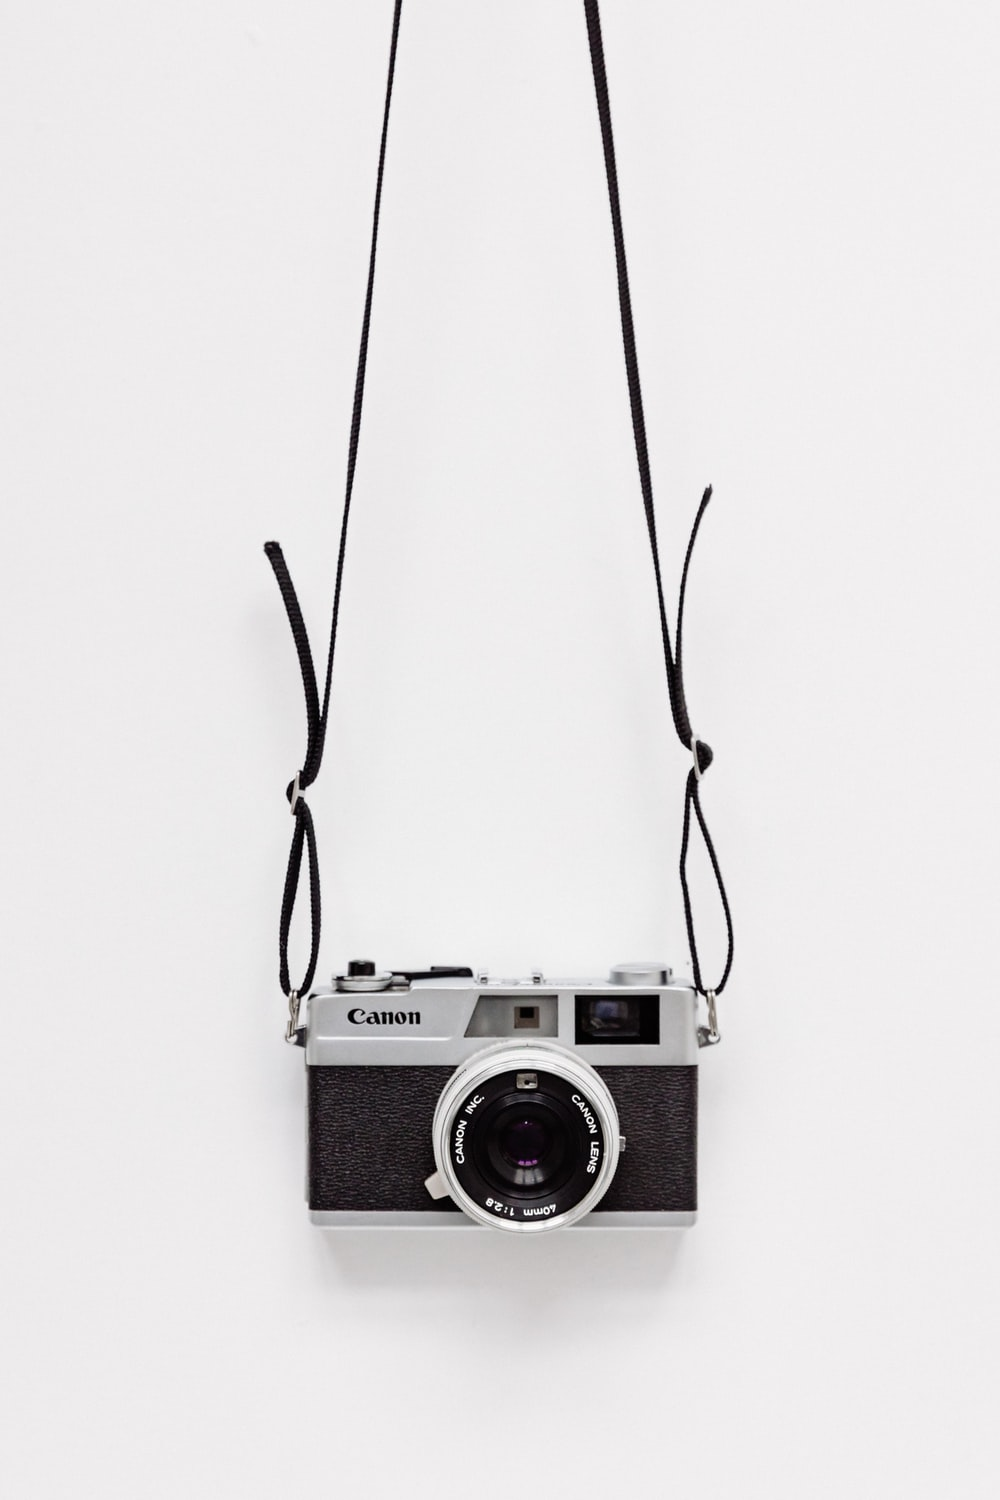 black and gray Canon camera on white surface